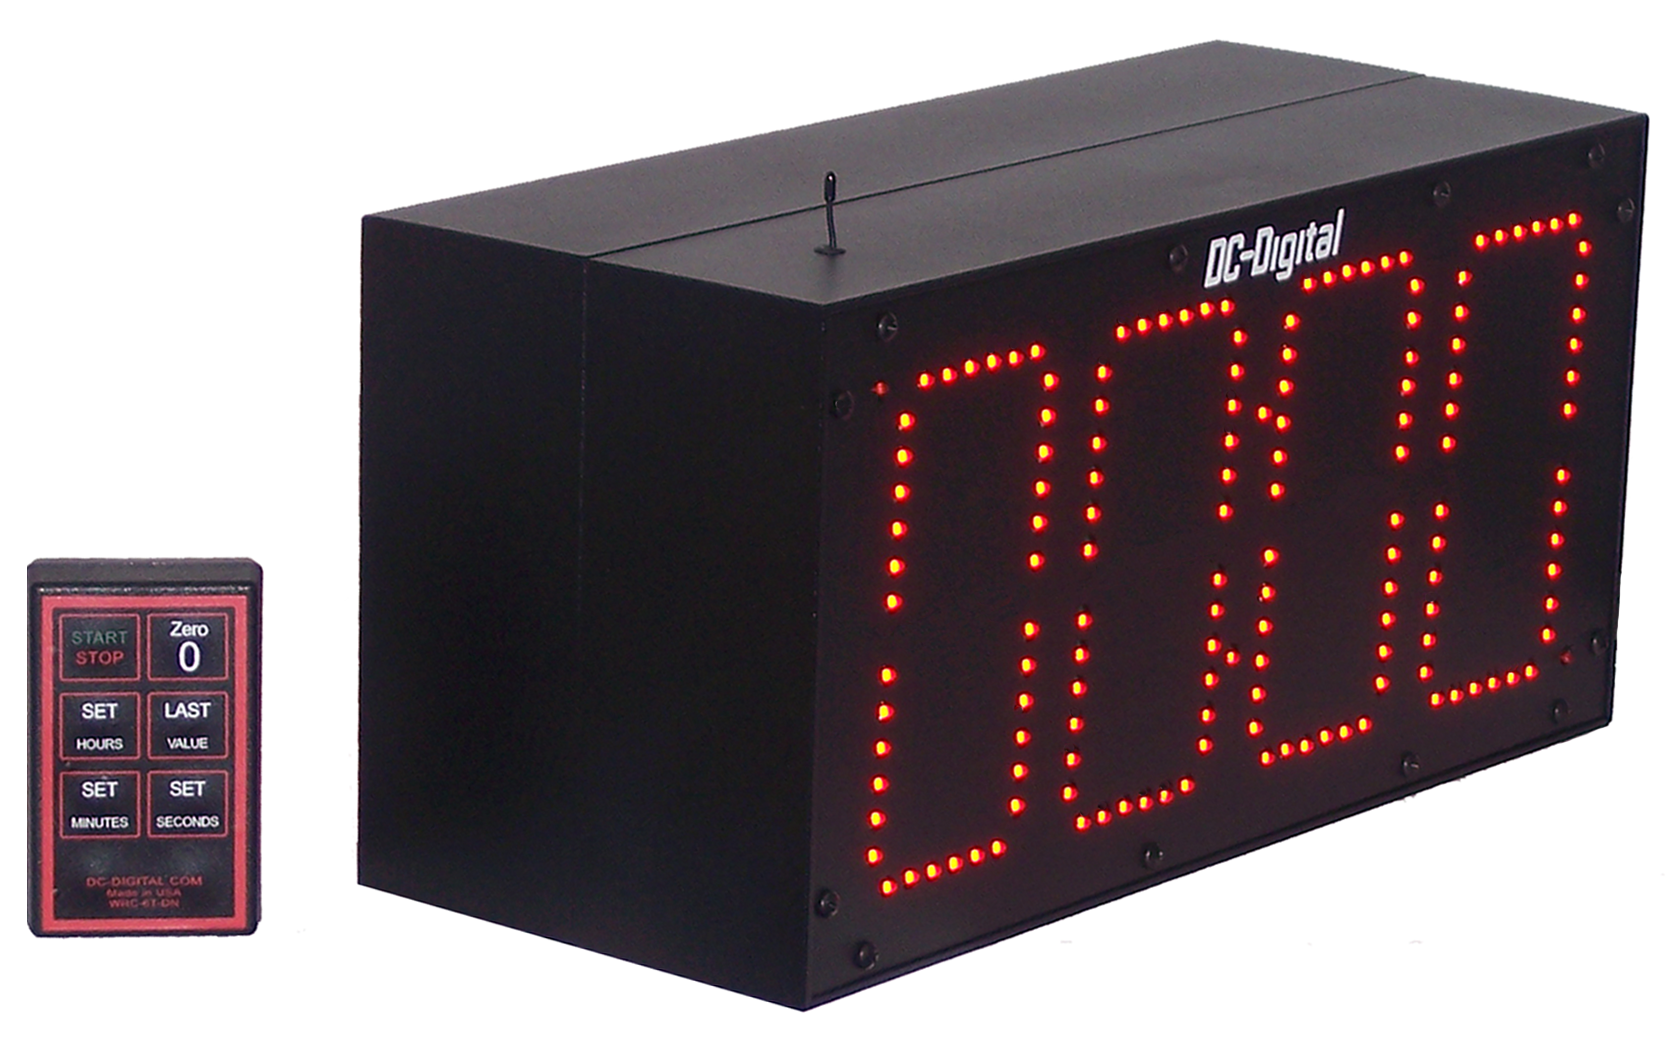 Double Sided Speech Conference, session clock timer, countdown wireless rf controls, all aluminum enclosure